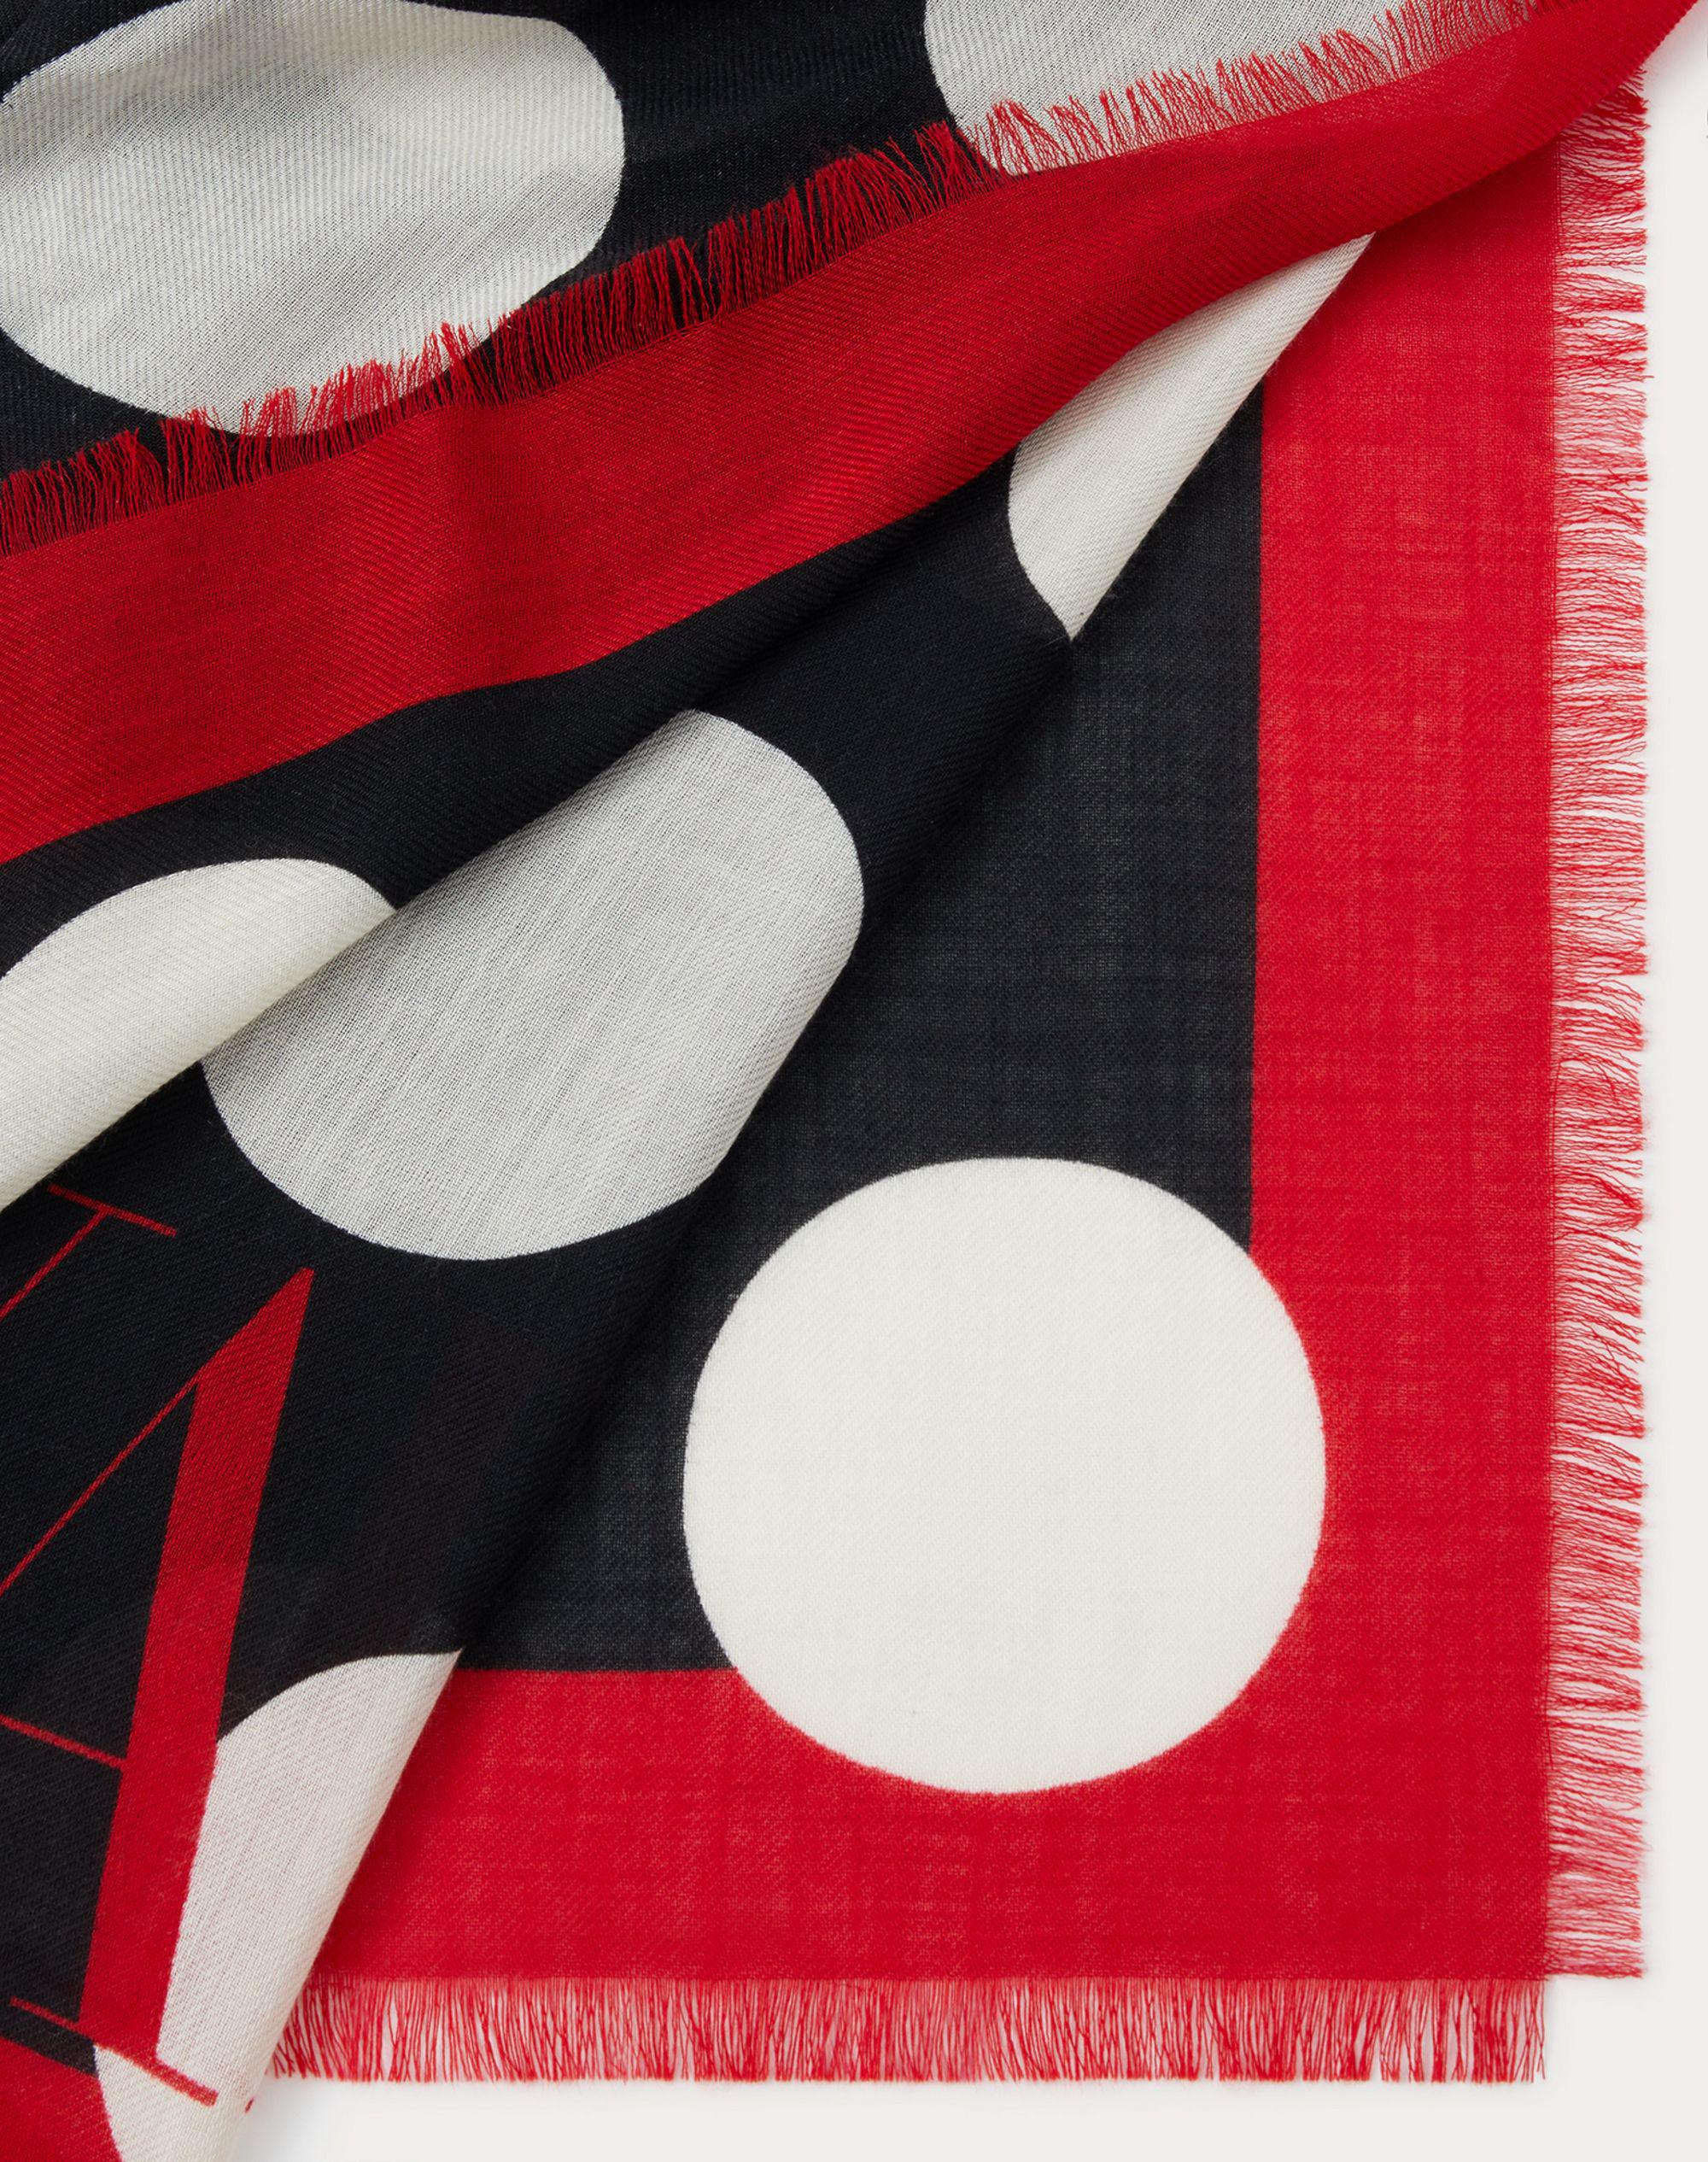 Dots print cashmere and silk shawl 140x140 cm / 55.1x55.1 in. 2